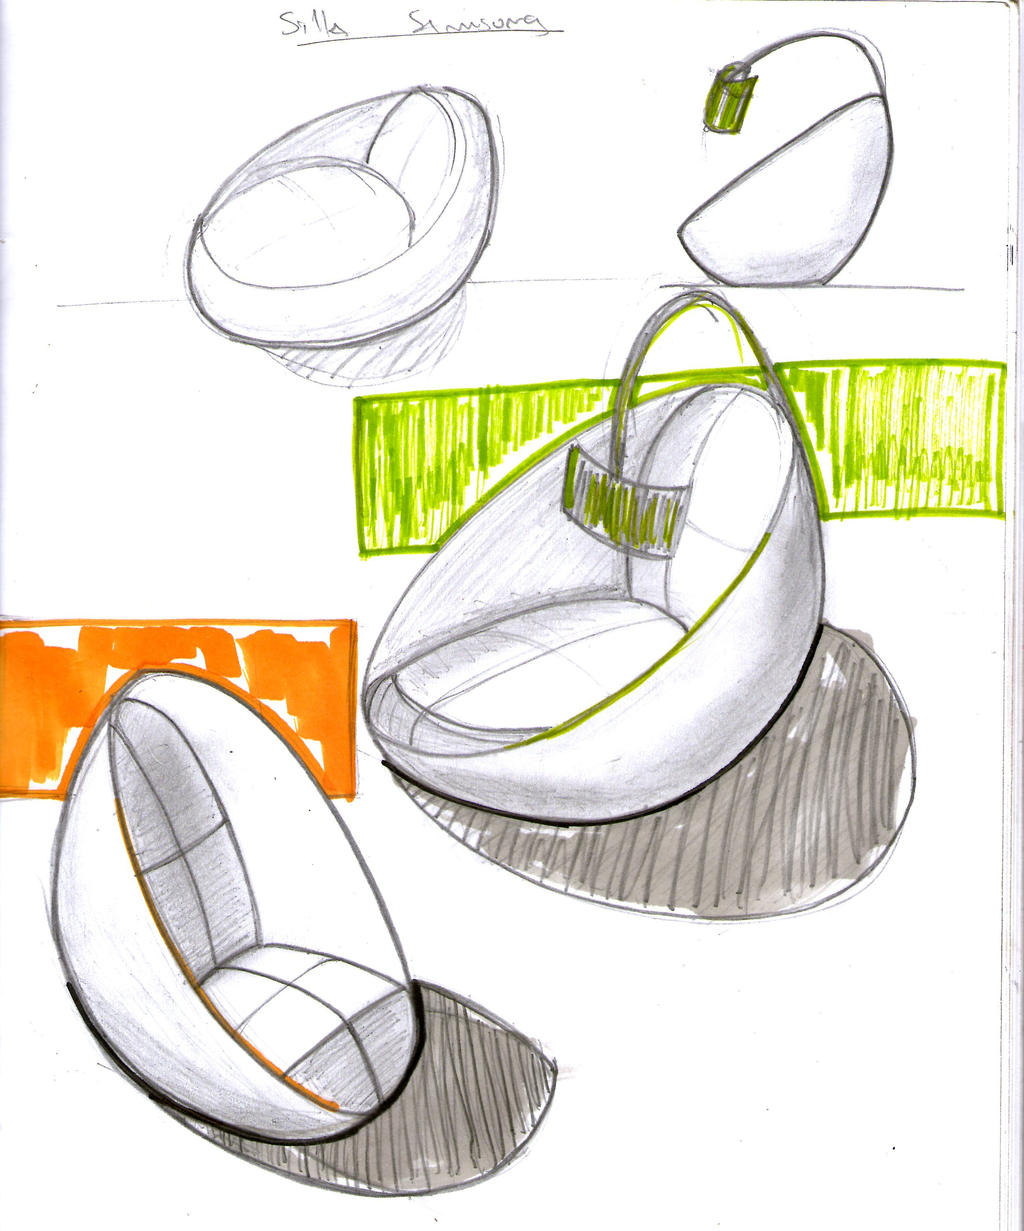 Capsule type chair sketch by chutato on deviantart for Industrial design chair